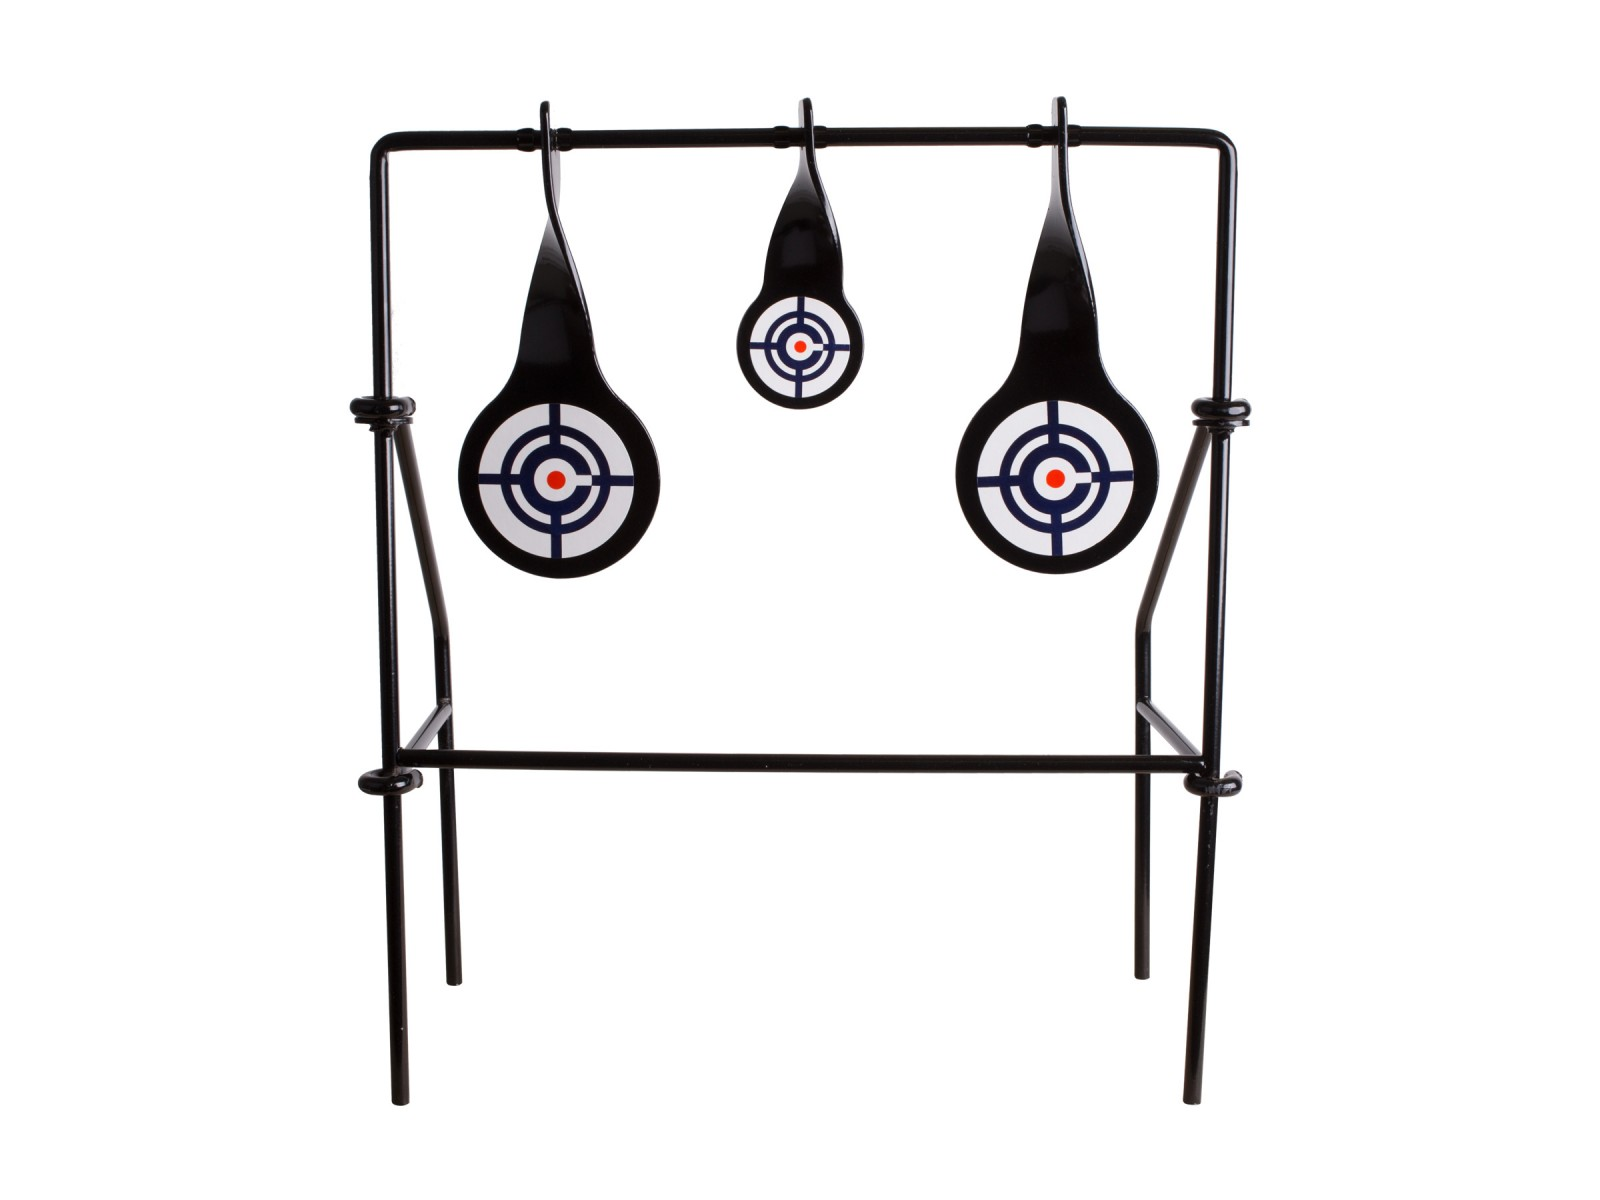 Crosman Spinning Logo Target, 3 Metal Spinners. Metal.